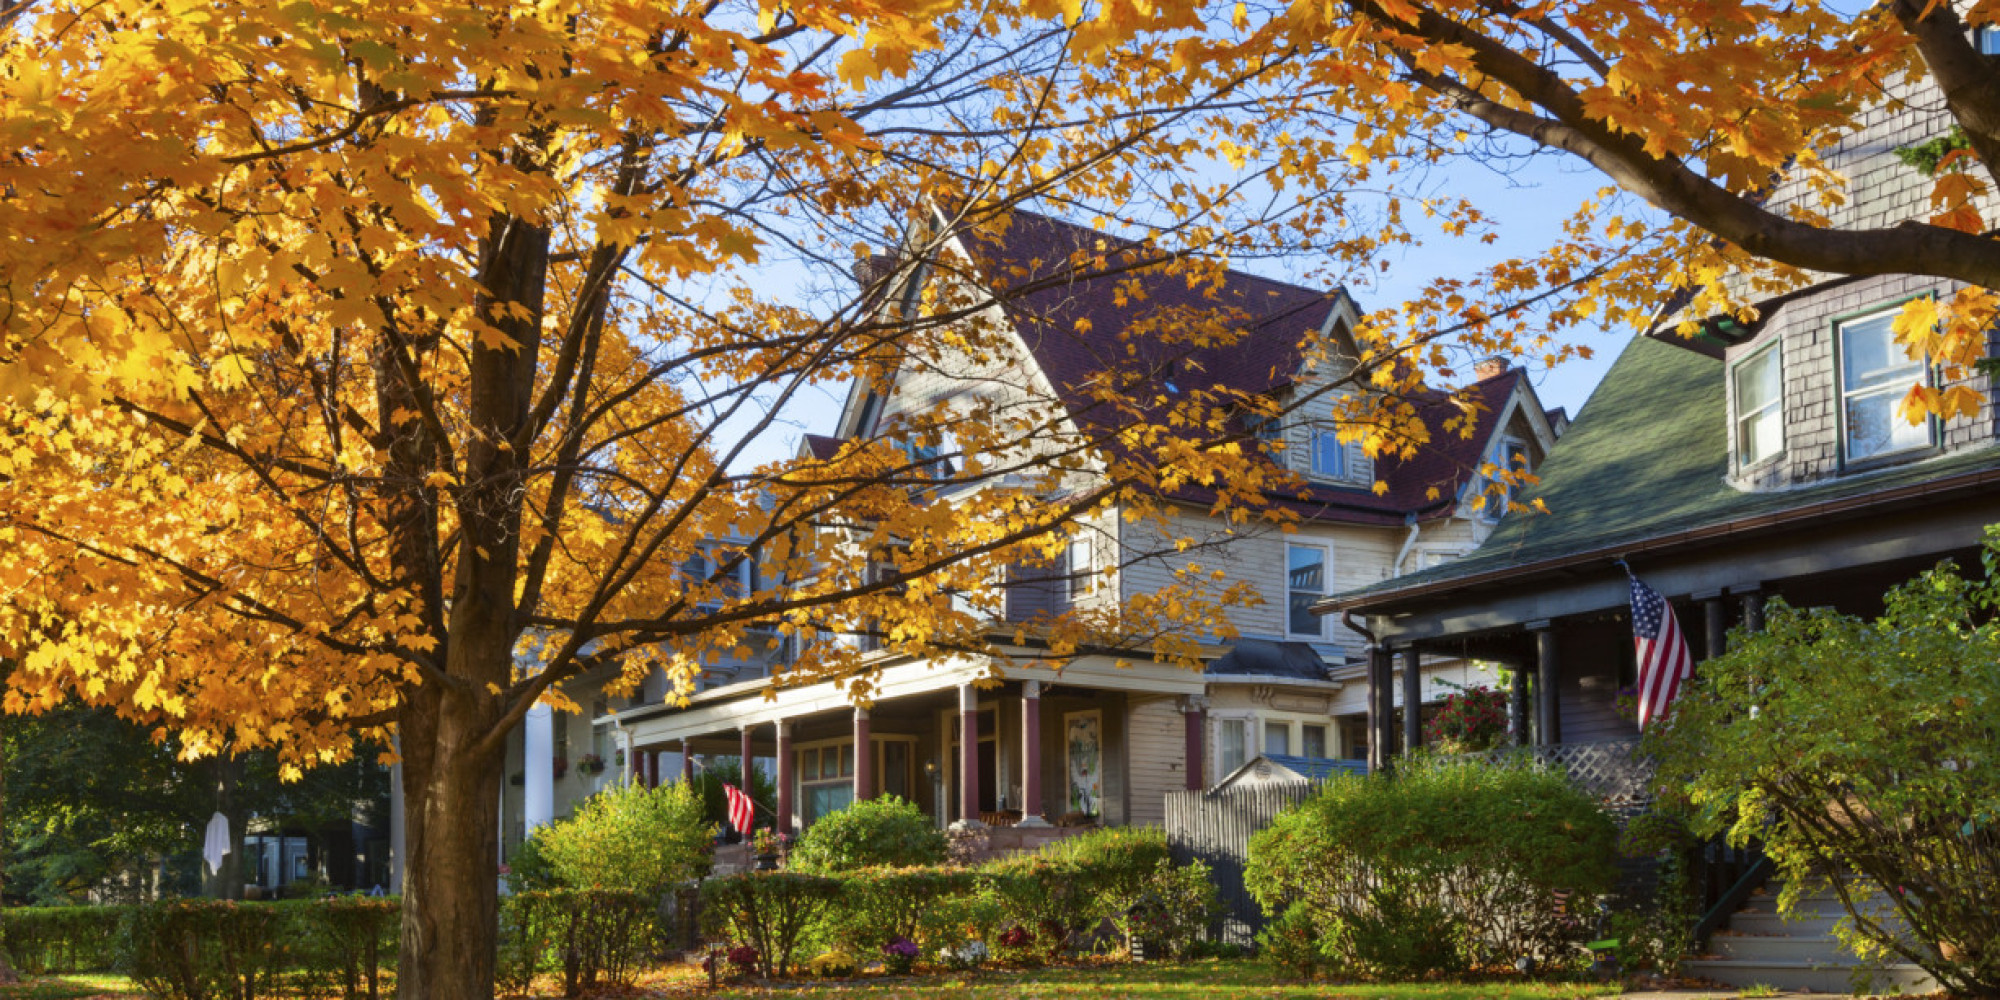 The 10 most beautiful neighborhoods in america ranked for Best houses in america